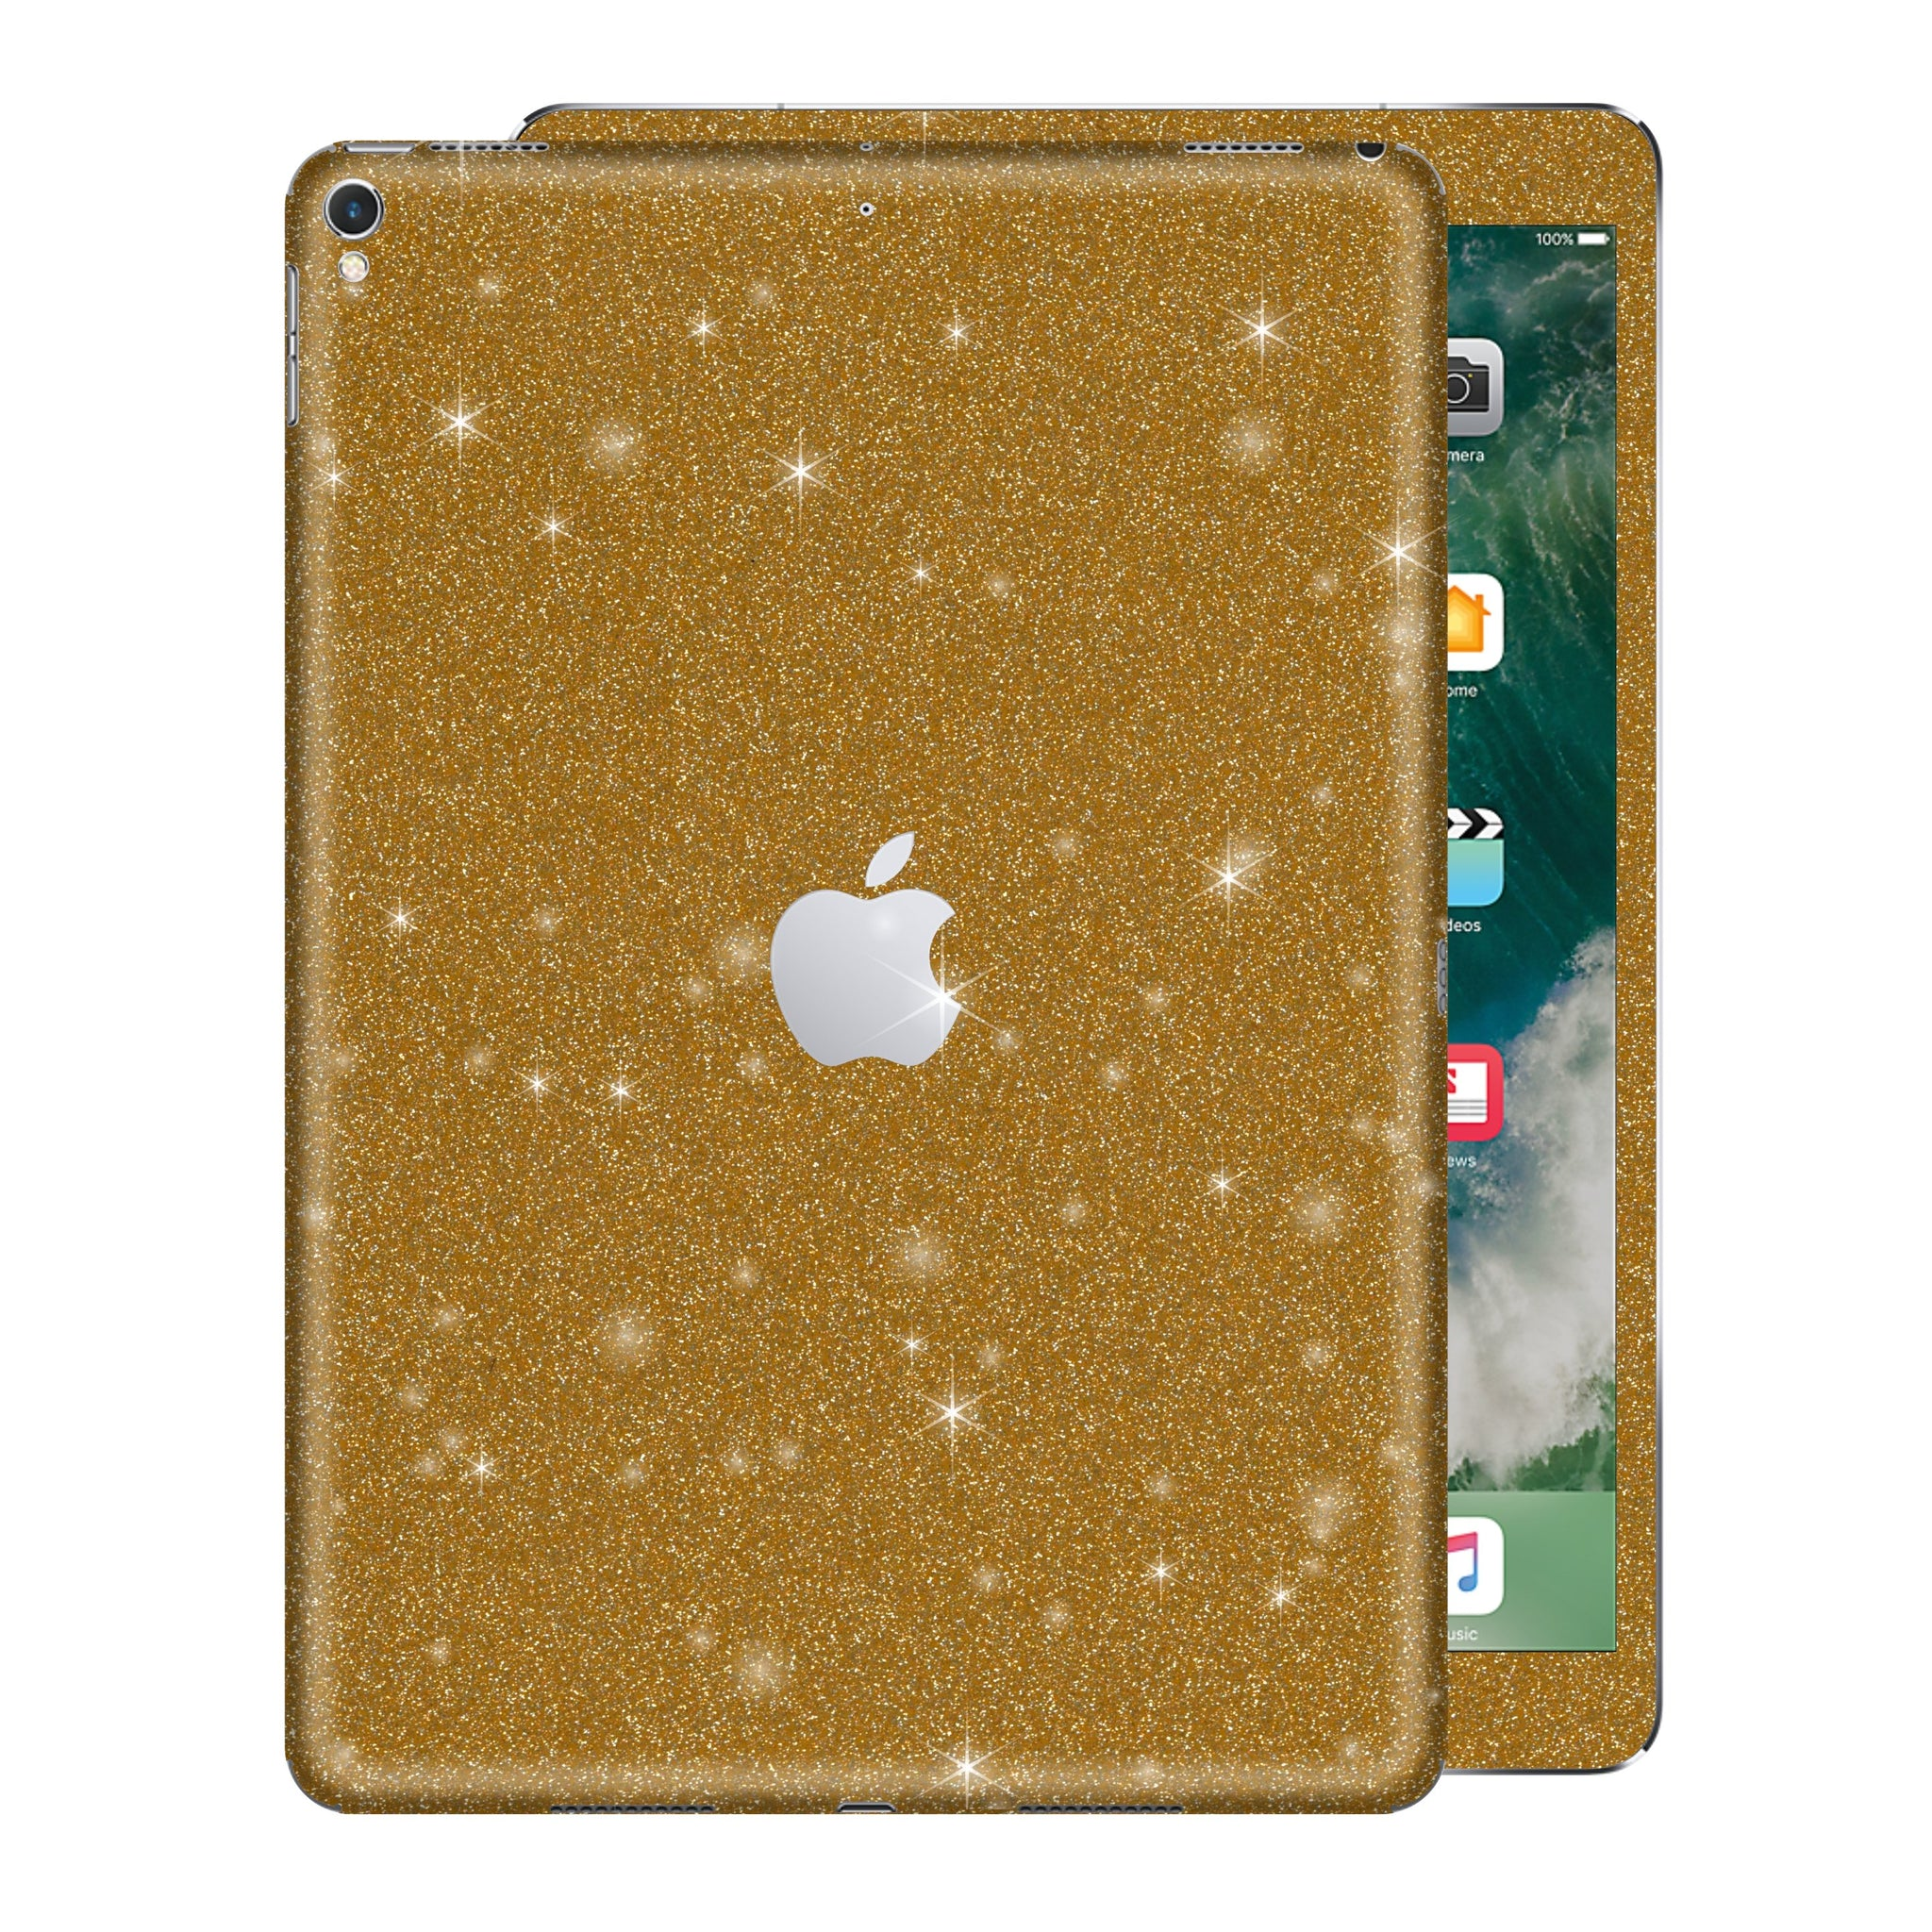 "iPad PRO 10.5"" inch 2017 Diamond GOLD Glitter Shimmering Skin Wrap Sticker Decal Cover Protector by EasySkinz"